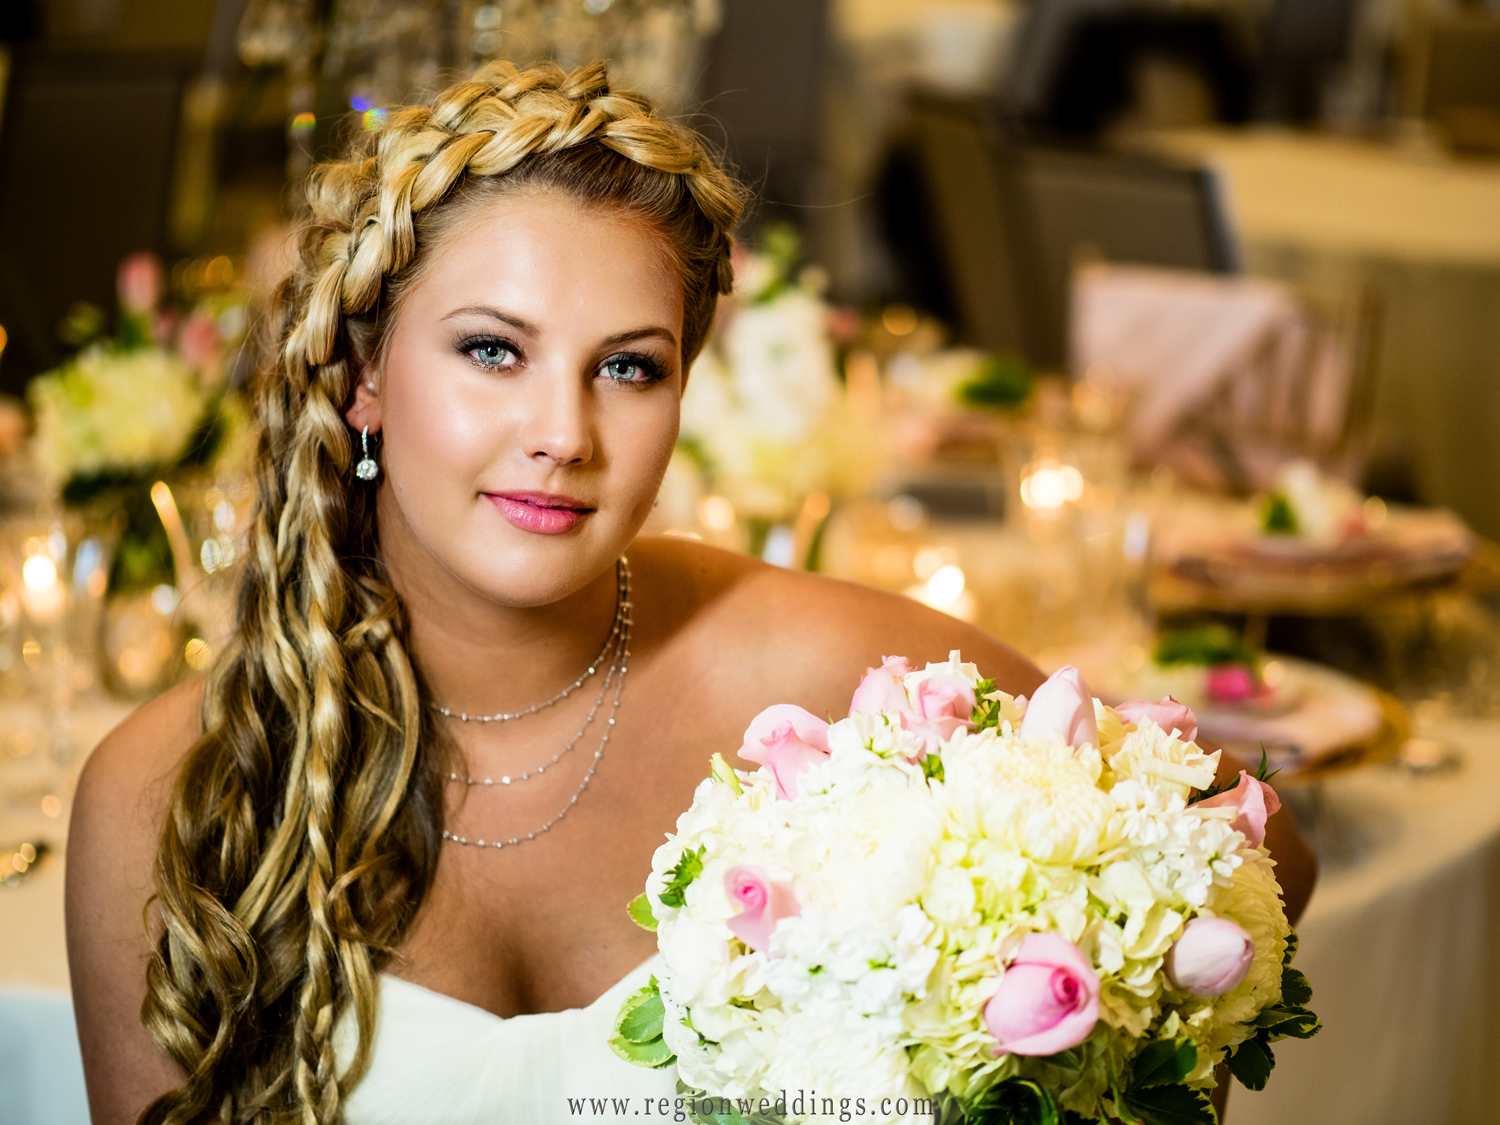 Bridal portrait at The Restaurant at Fair Oaks Farms